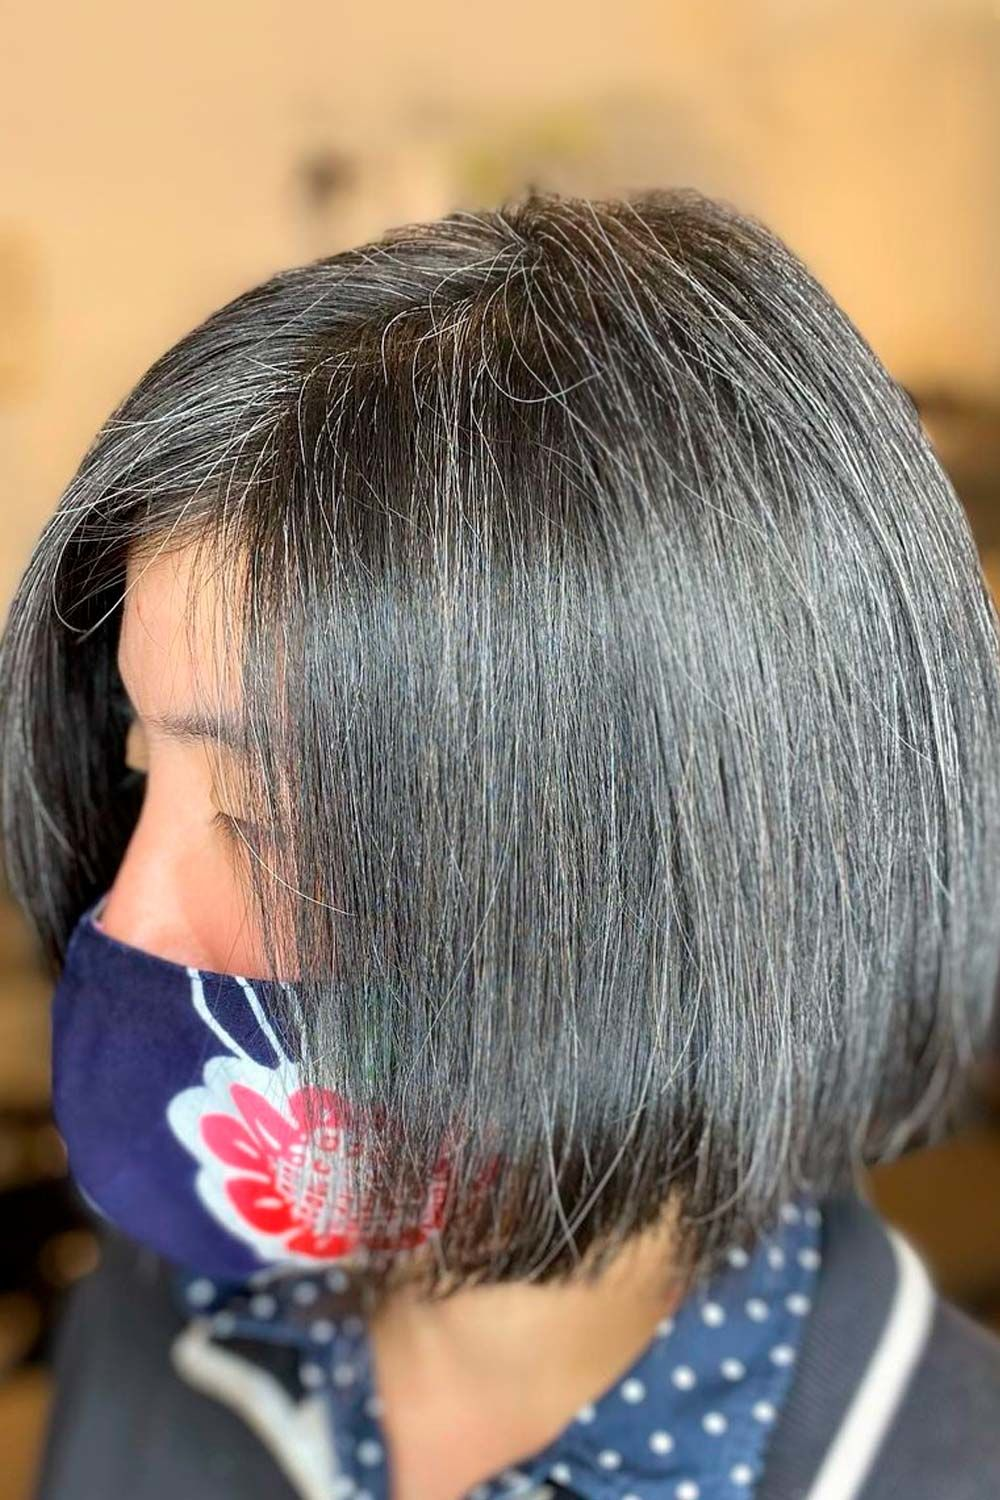 Simple Bob Cuts, short afro hairstyles for round faces, short edgy hairstyles for women with round faces,